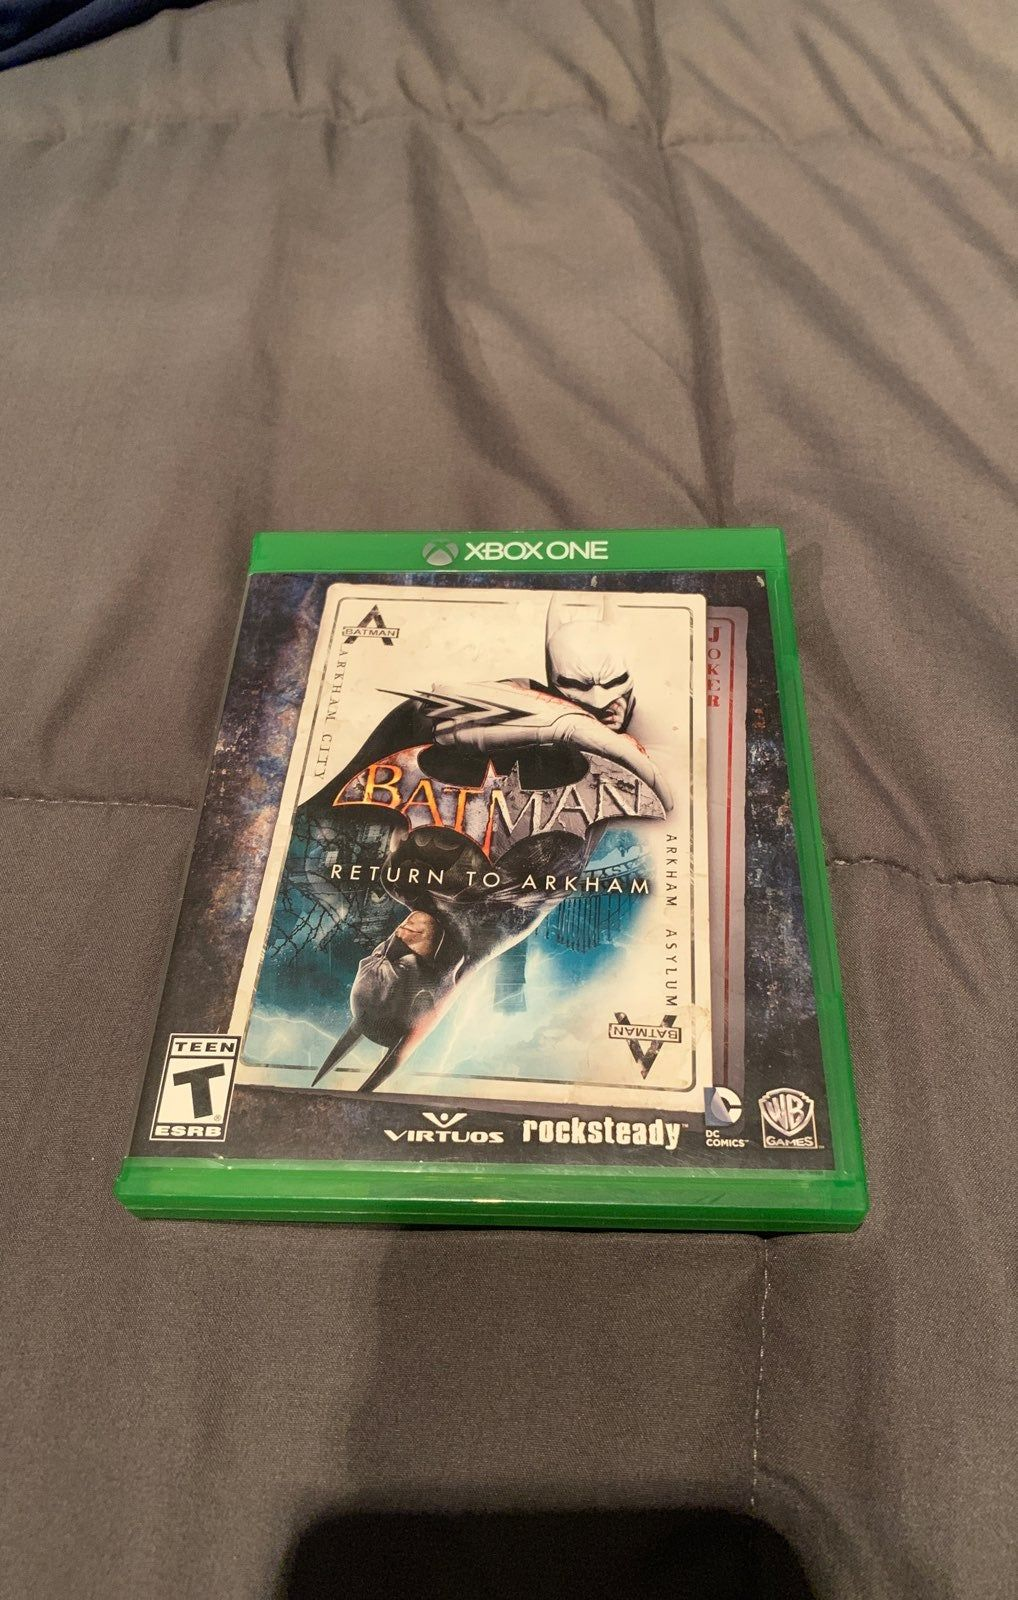 Great Condition No Scratches 2 Discs Included With Images